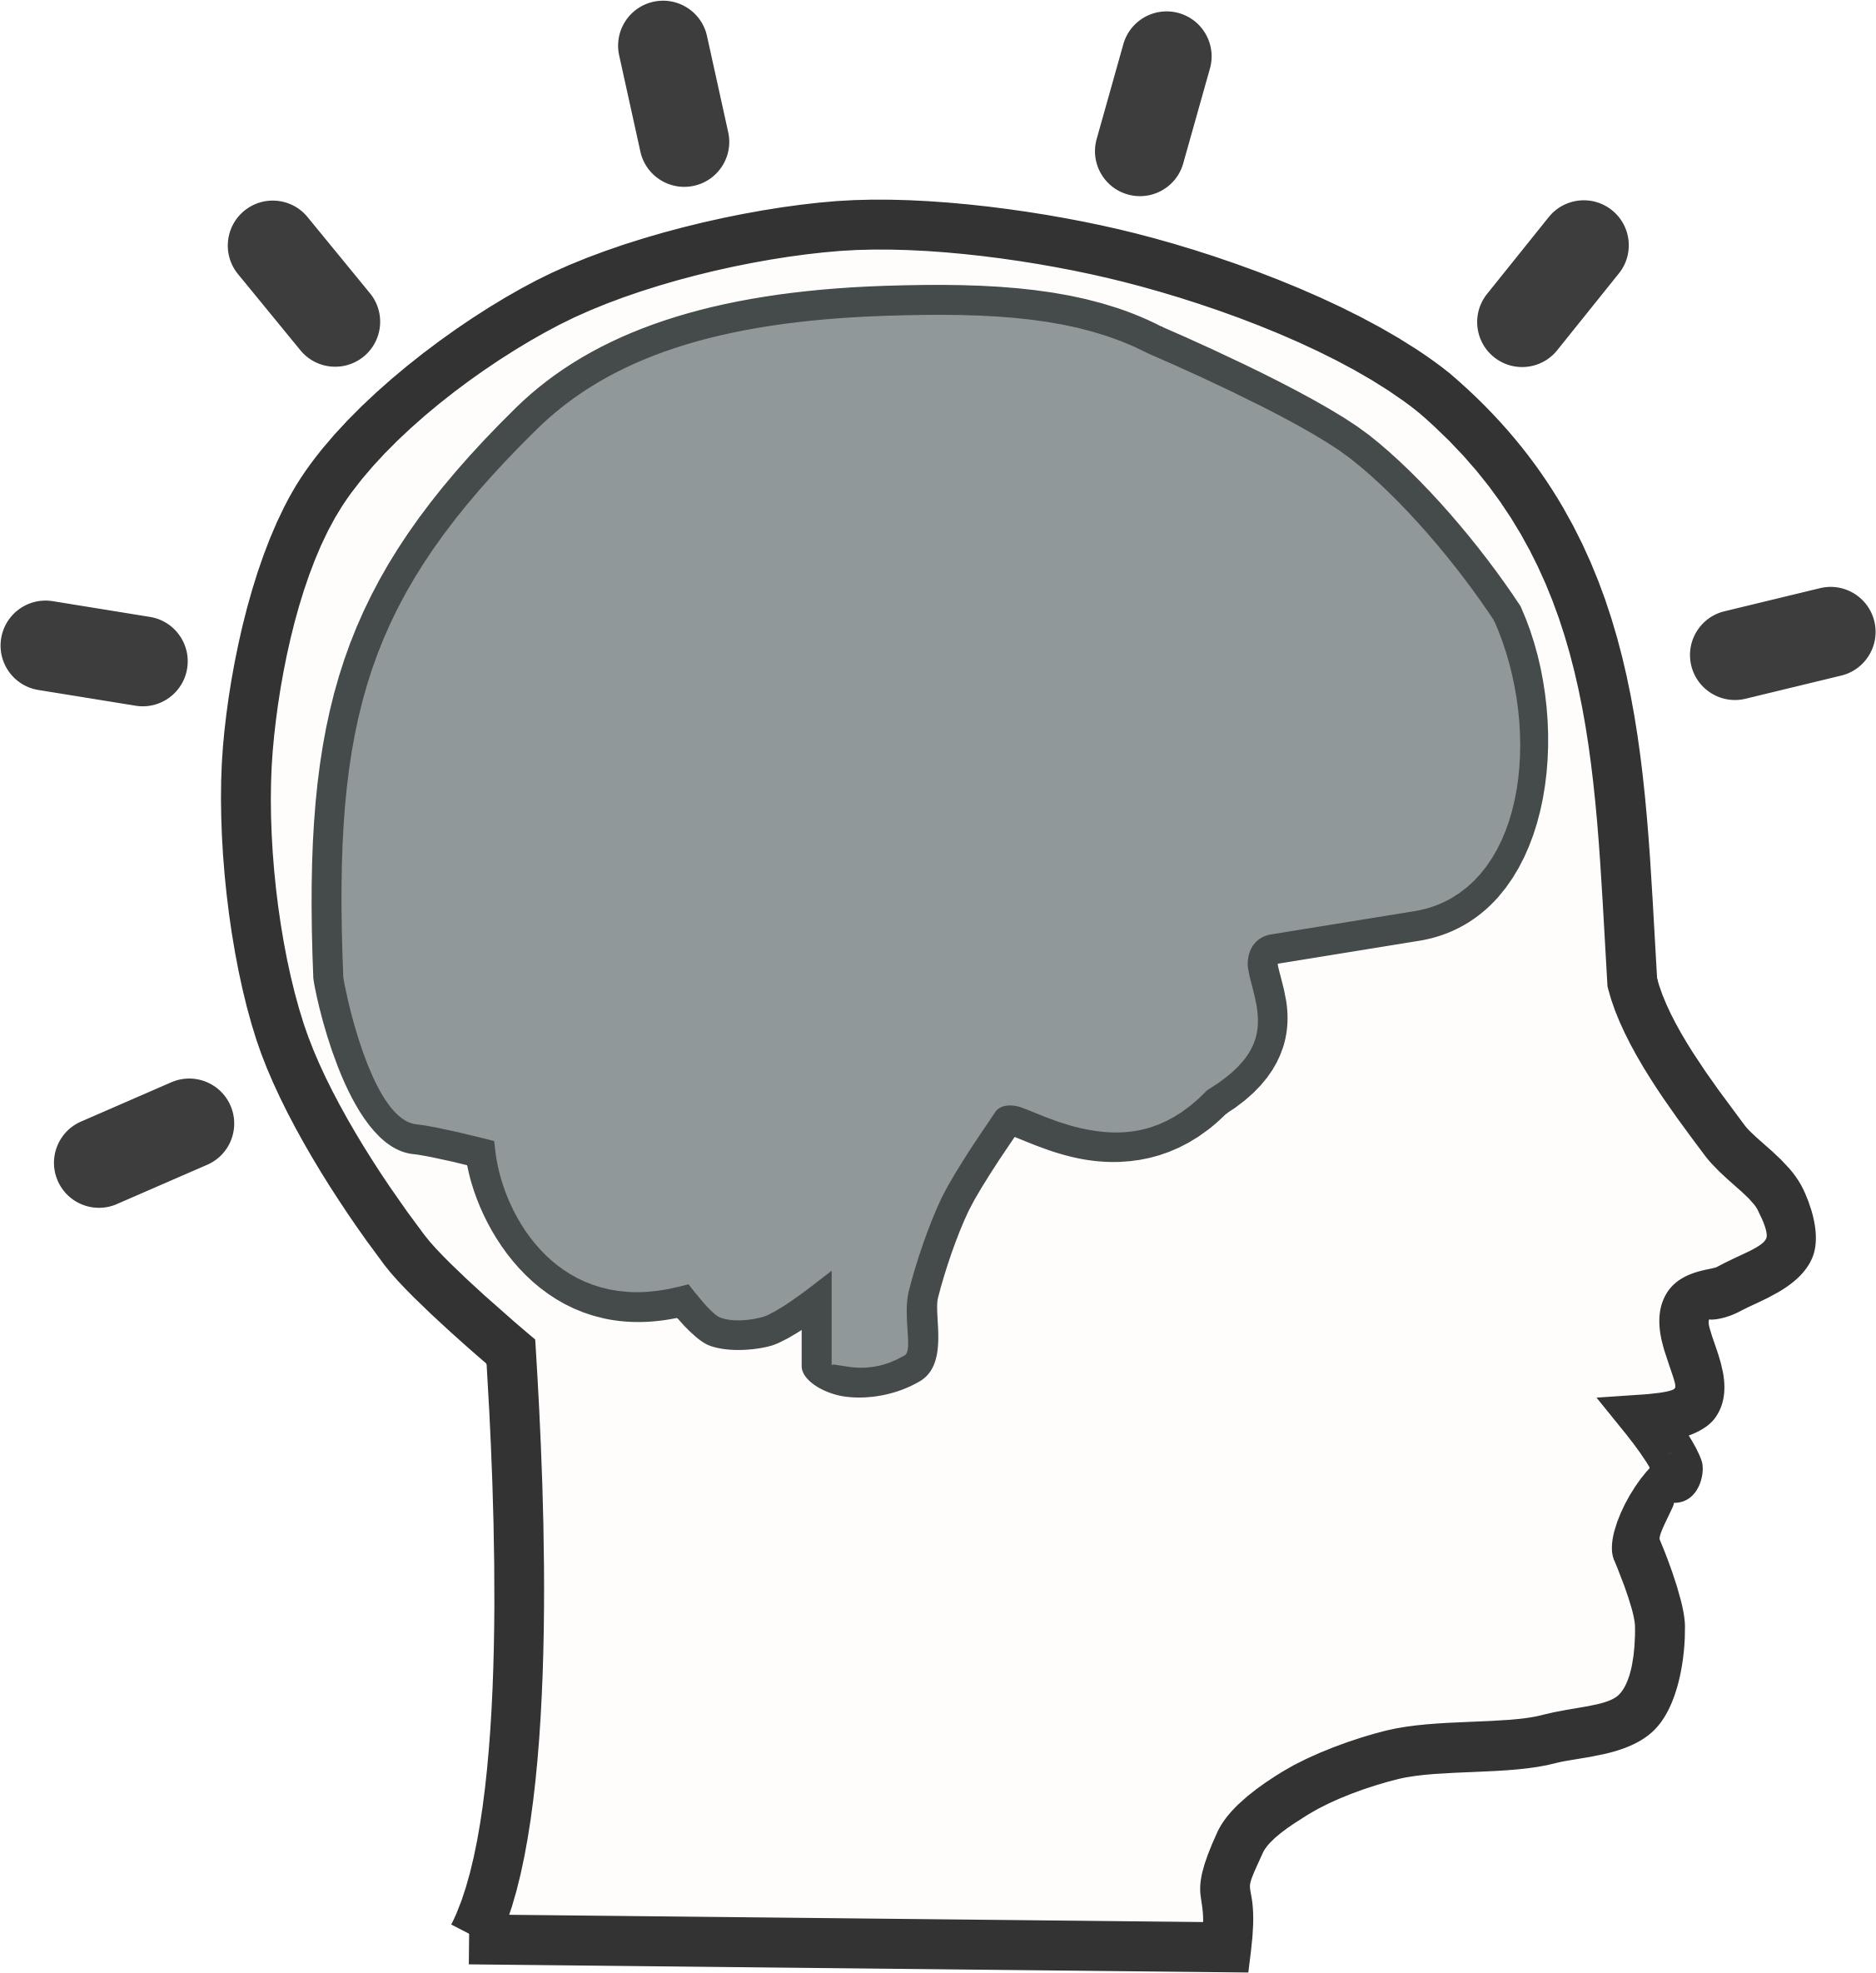 Brain clipart cognitive. Free icons png bra